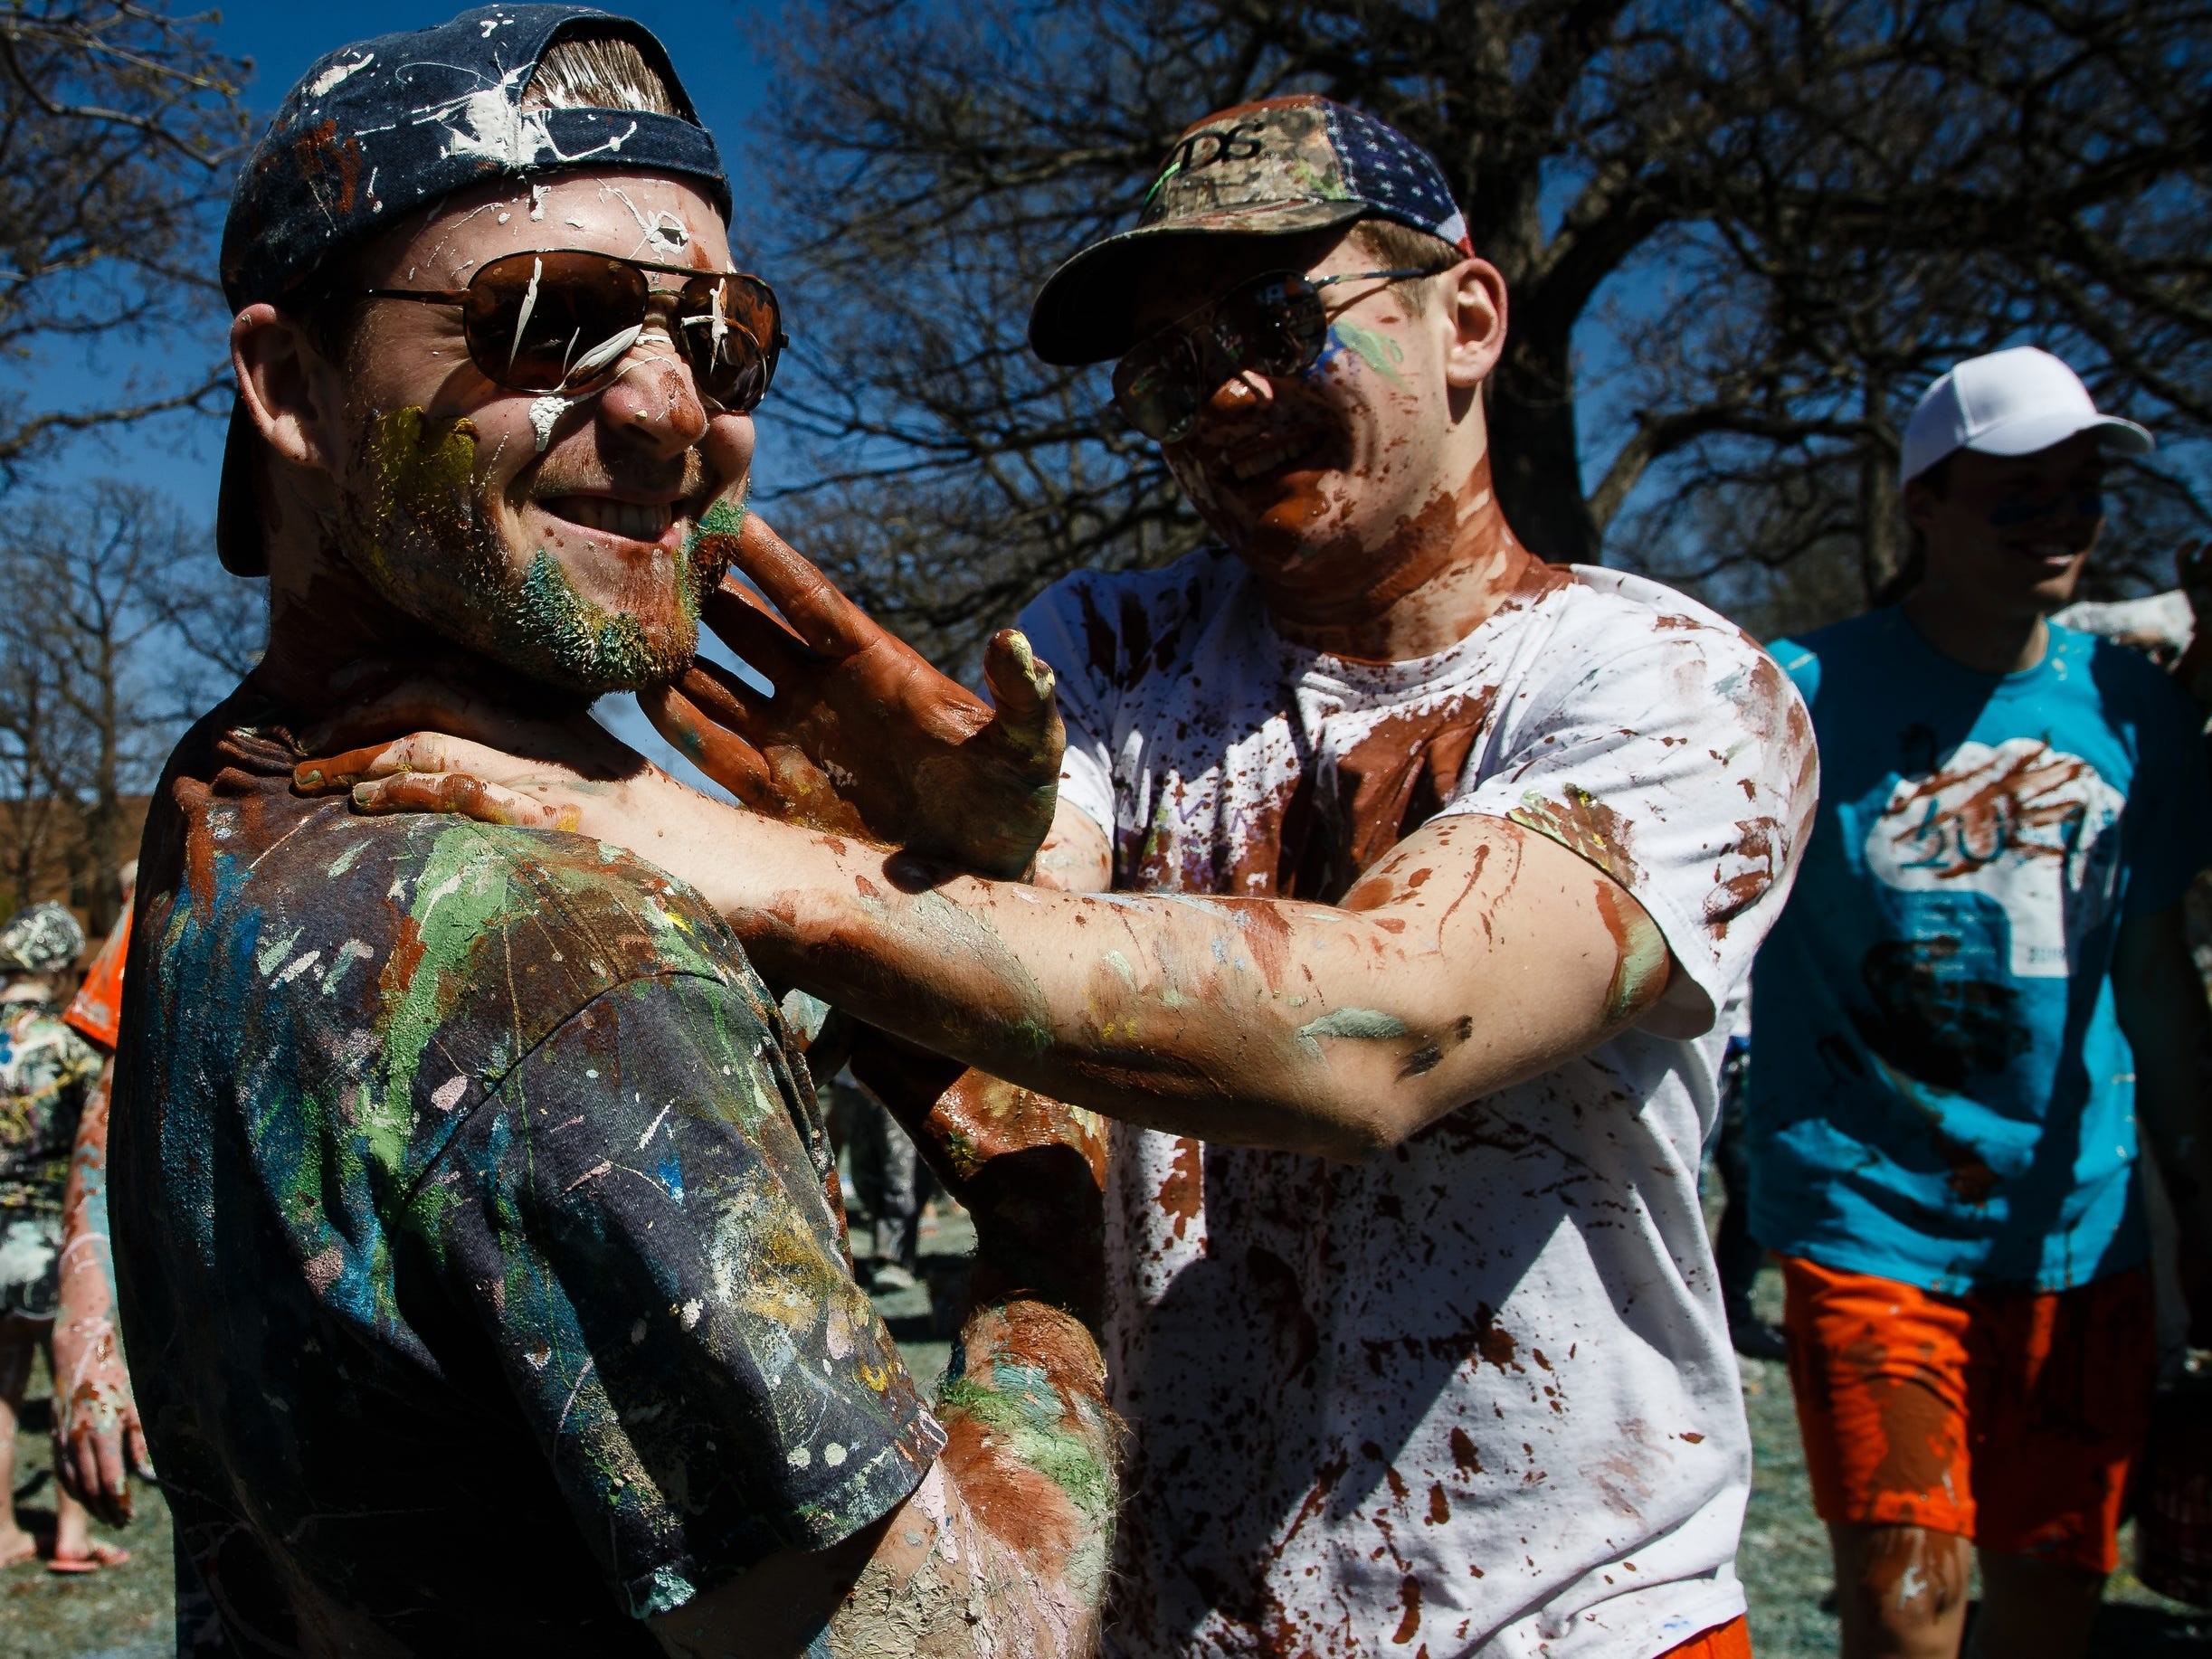 Declan Merbeth, 19 of Frankfort, Ill, right, spreads paint on Benedict Schultz, 19 of Dubuque as students at Drake University paint Painted street on Friday, April 19, 2019, in Des Moines.